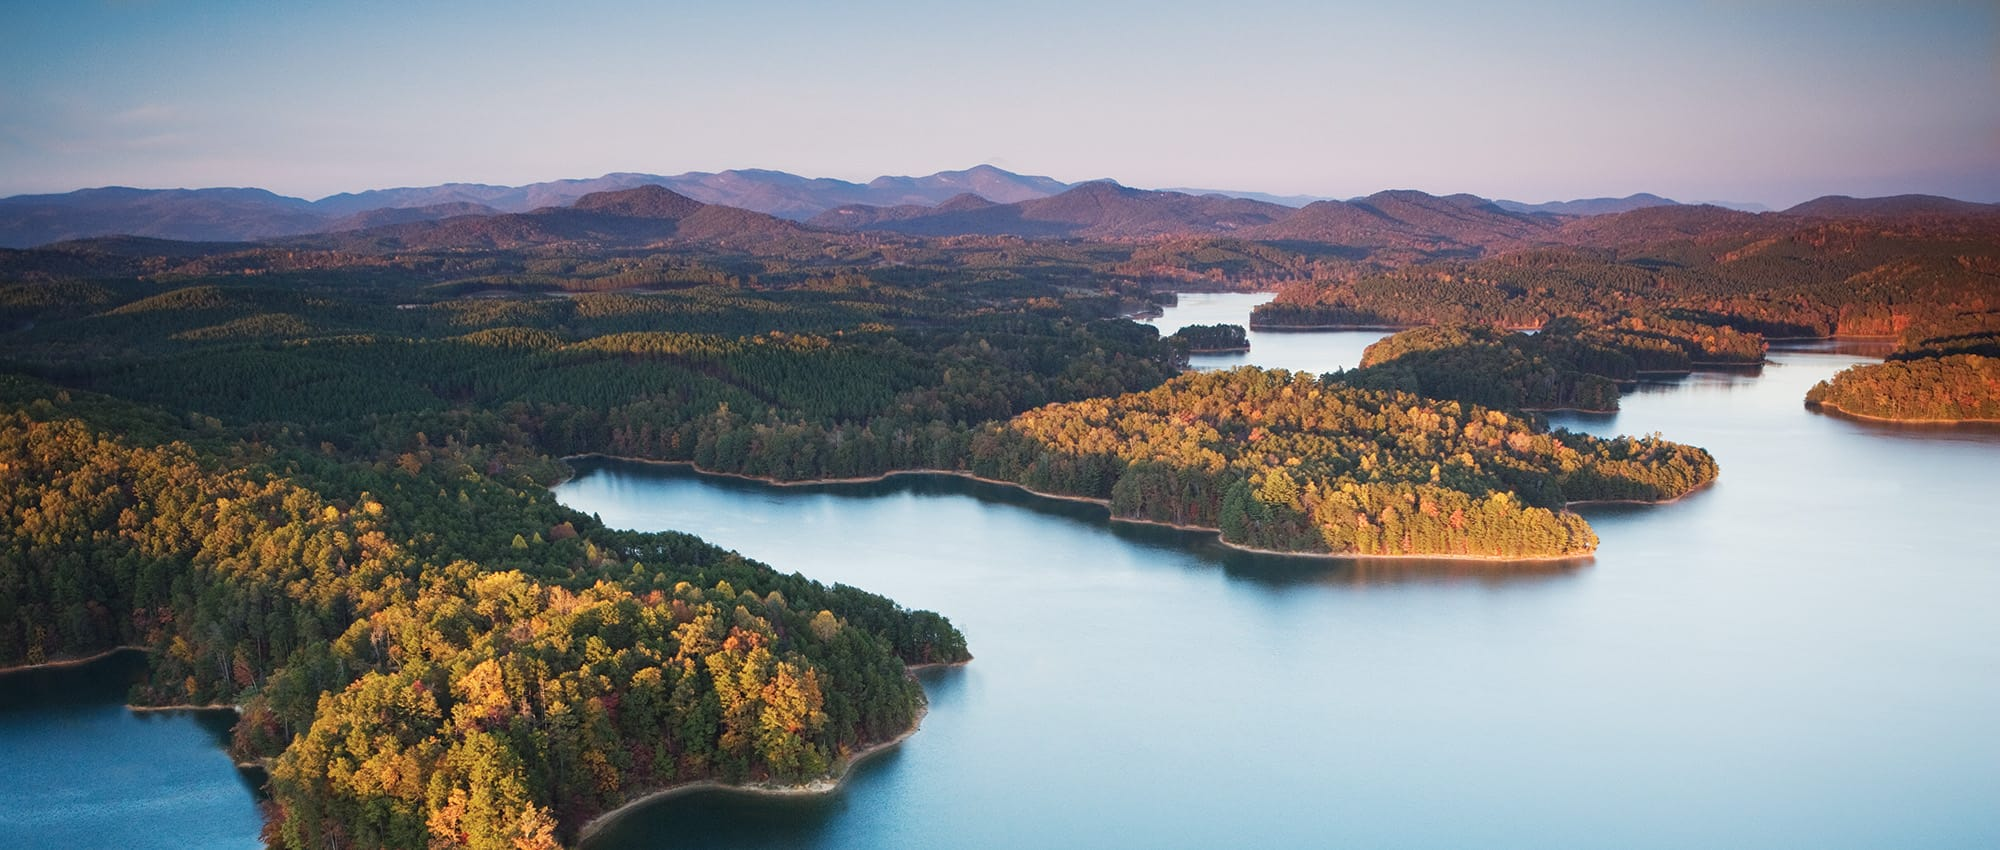 Aerial view of the mountains from Dockside at Lake Keowee